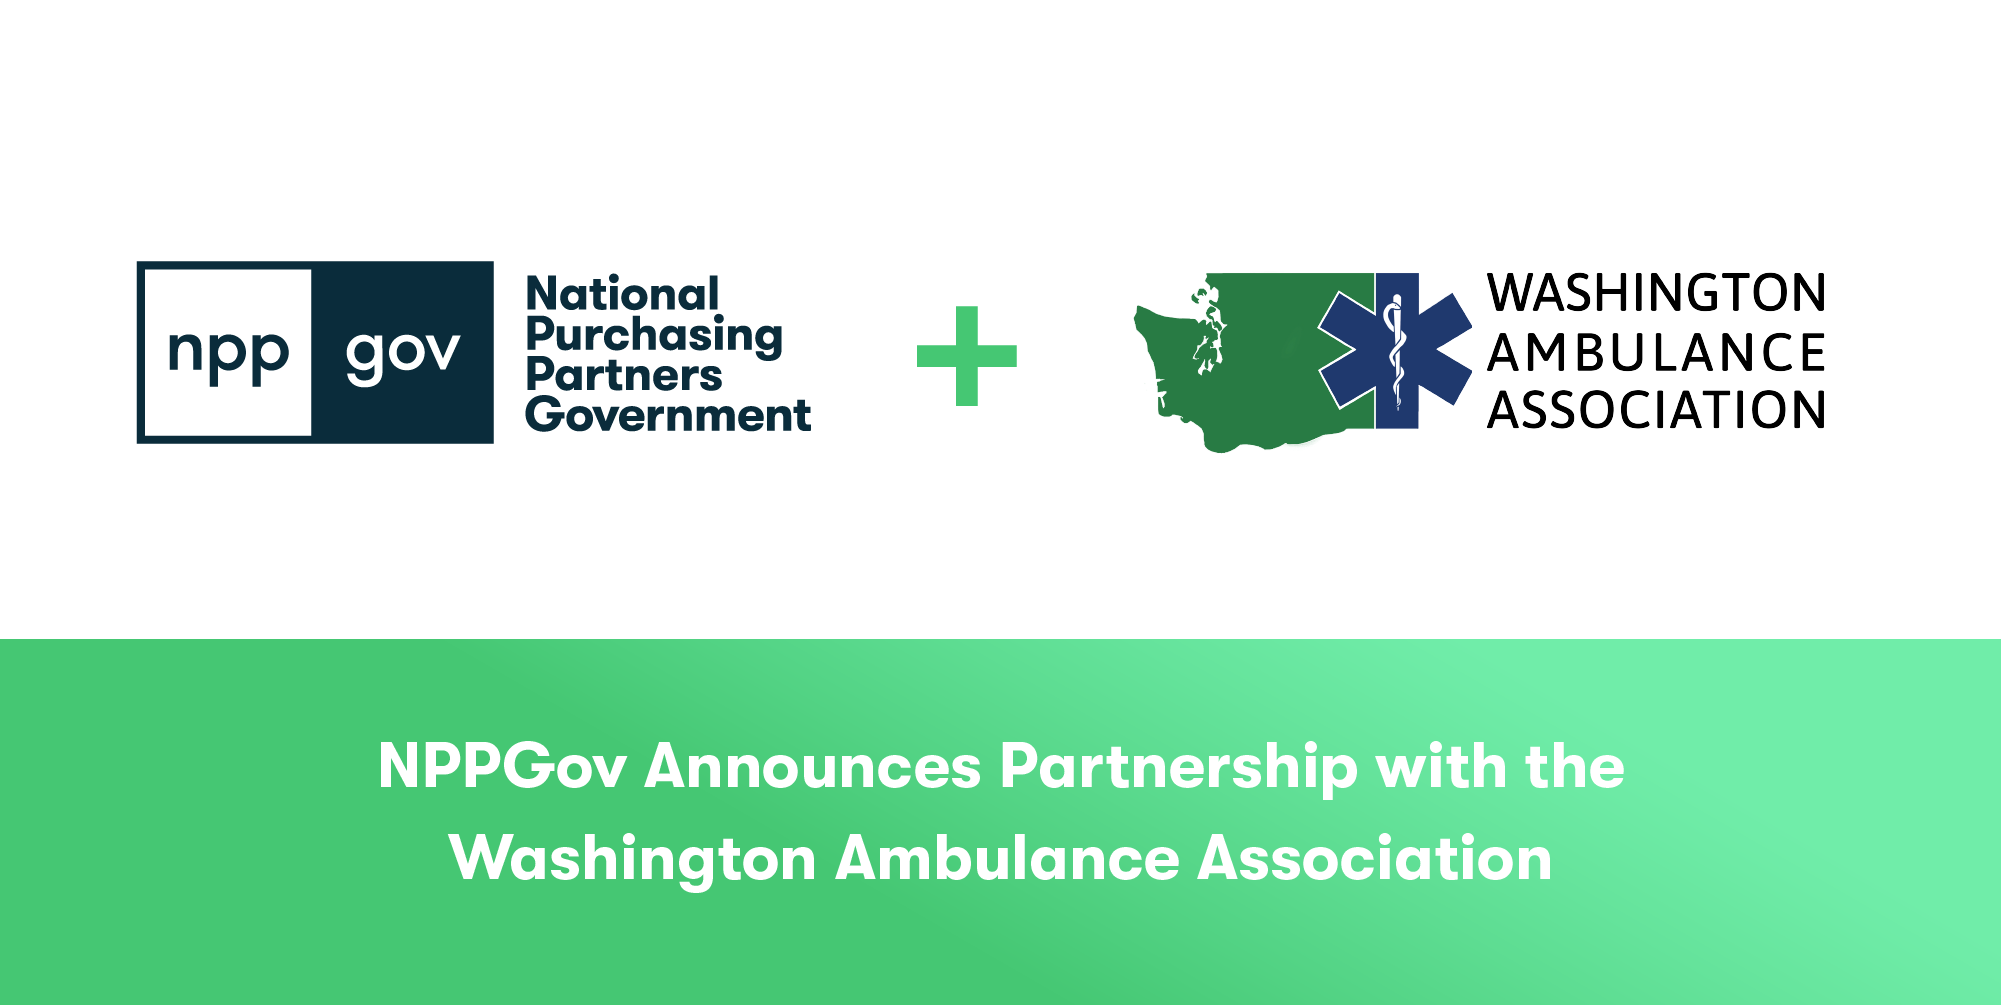 NPPGov Public Safety GPO Partners With The Washington Ambulance Association